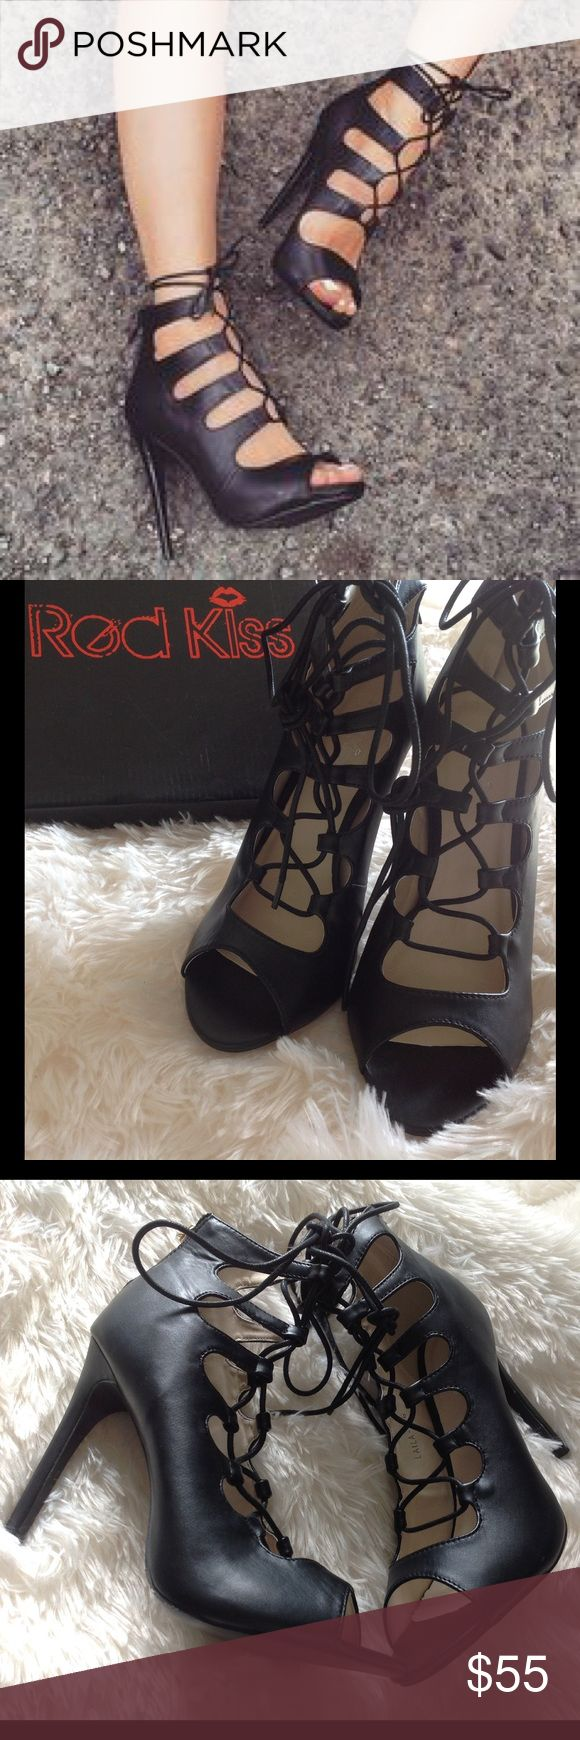 """Black Faux Leather Lace Up Heels From ENGLAND BRAND NEW black lace up heels. 4"""" heel.  Similar to Zara, but, these are by Red Kiss. In box. UK size 6. US size 8. Zara Shoes Heels"""